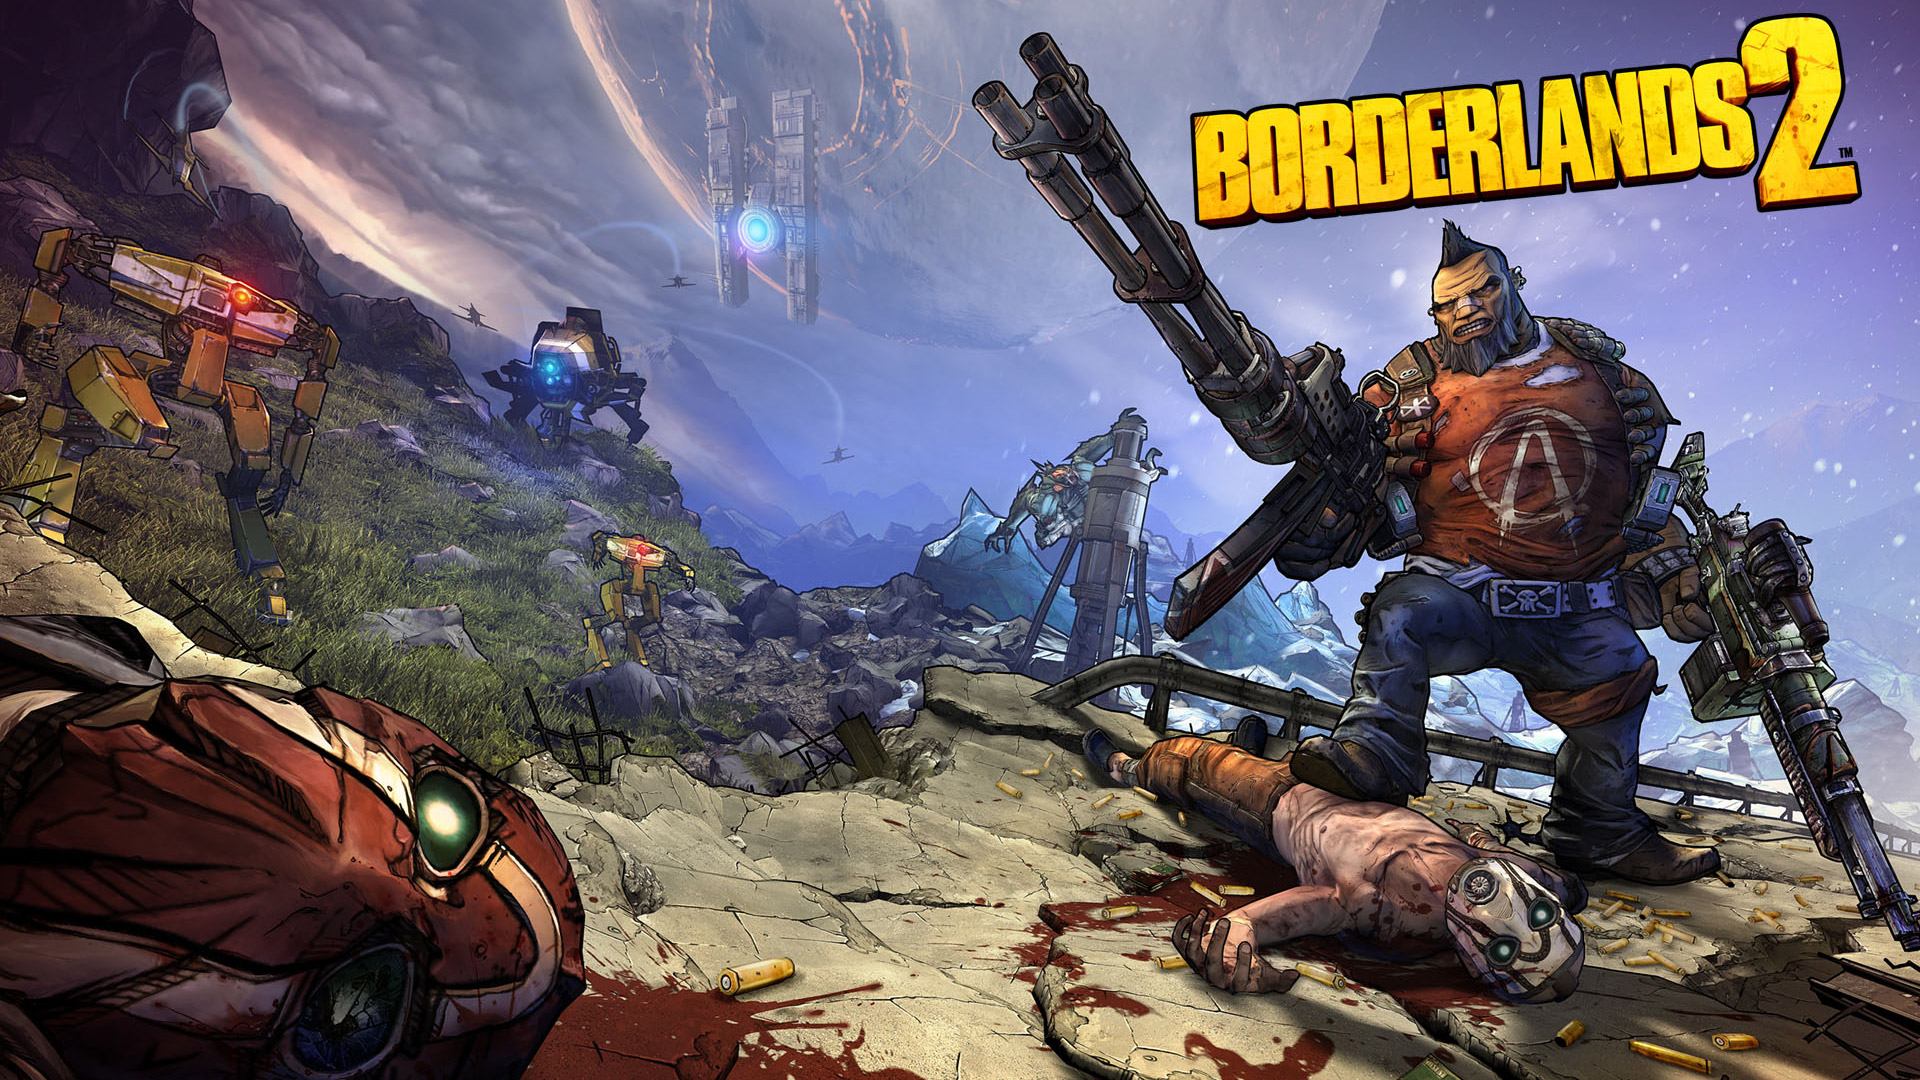 Free Borderlands 2 Wallpaper in 1920x1080